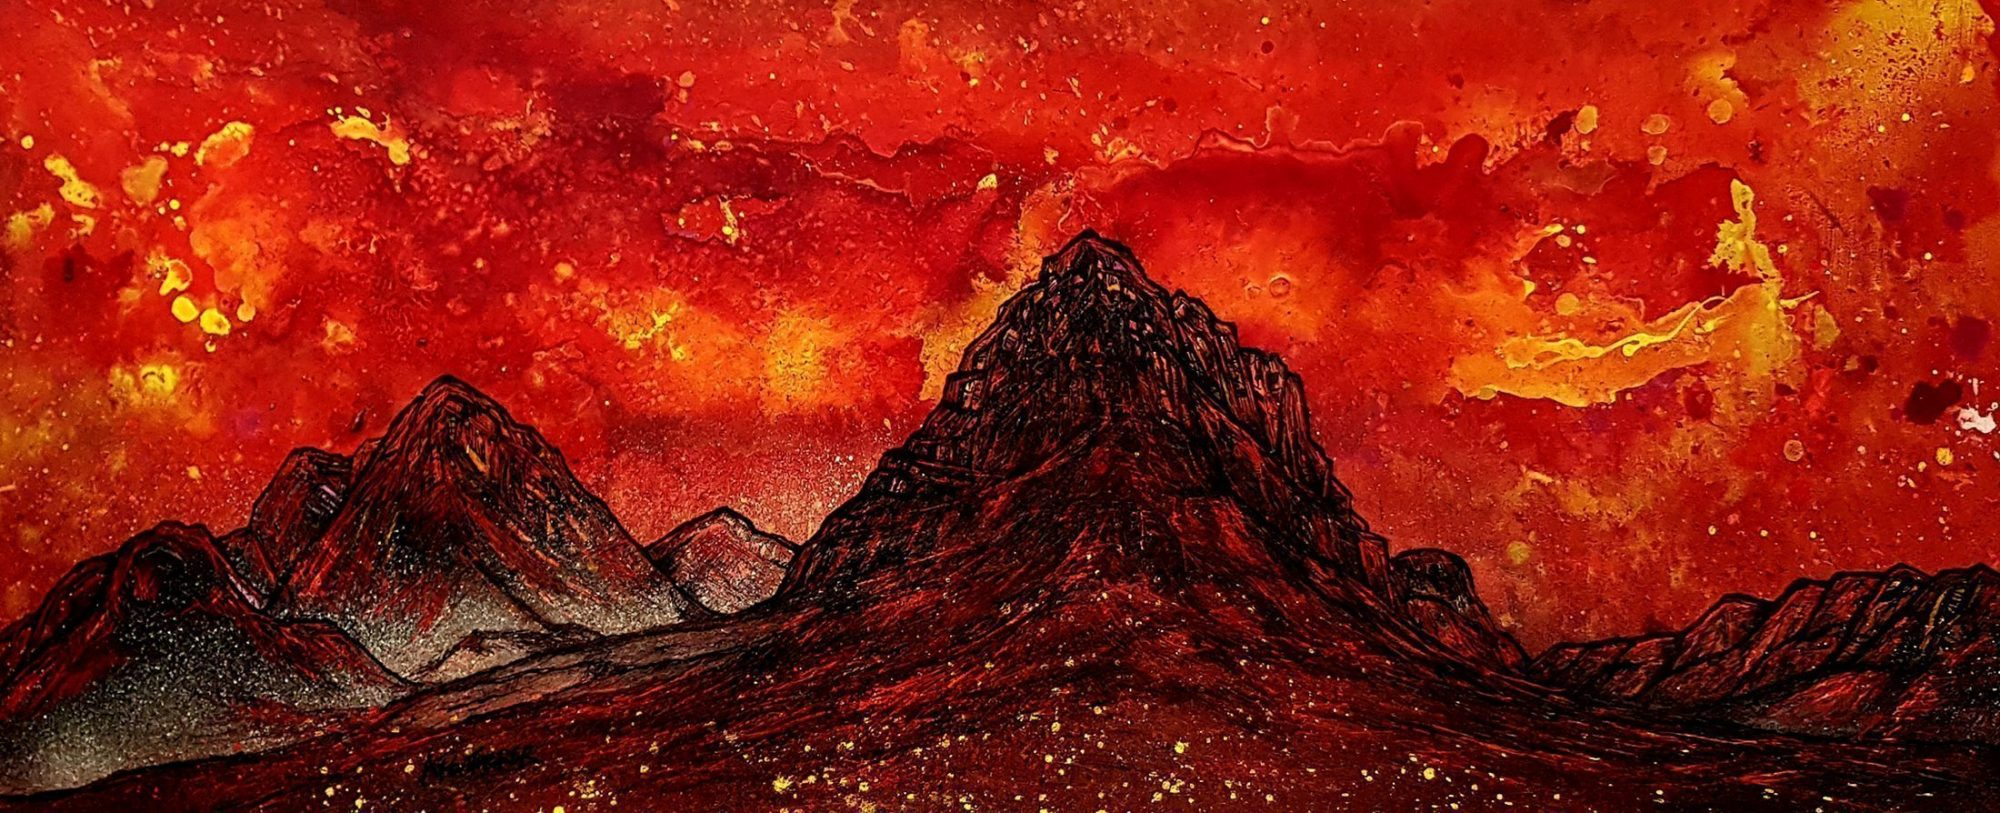 Buachaille Etive Mor, Glencoe, Rannoch Moor, Scottish Highlands - Original painting & Prints